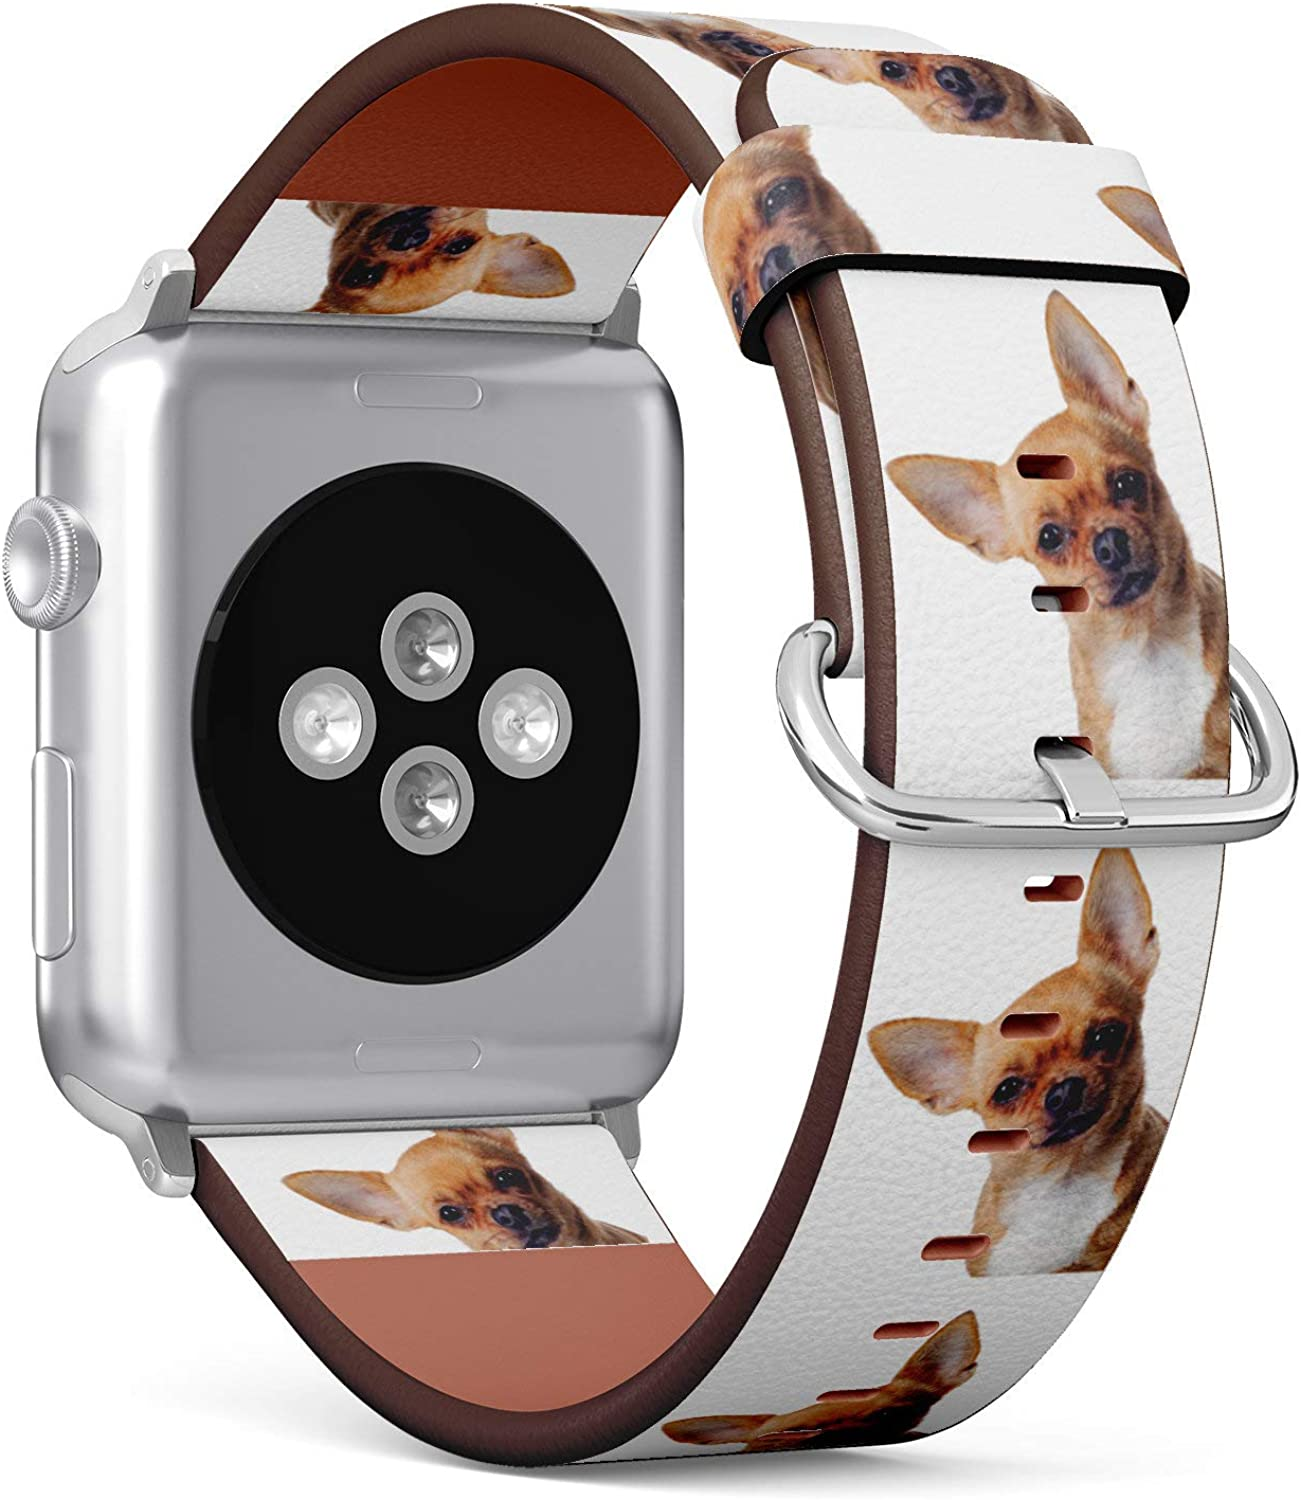 (Lovely Chihuahua Dog) Patterned Leather Wristband Strap for Apple Watch Series 4/3/2/1 gen,Replacement for iWatch 38mm / 40mm Bands